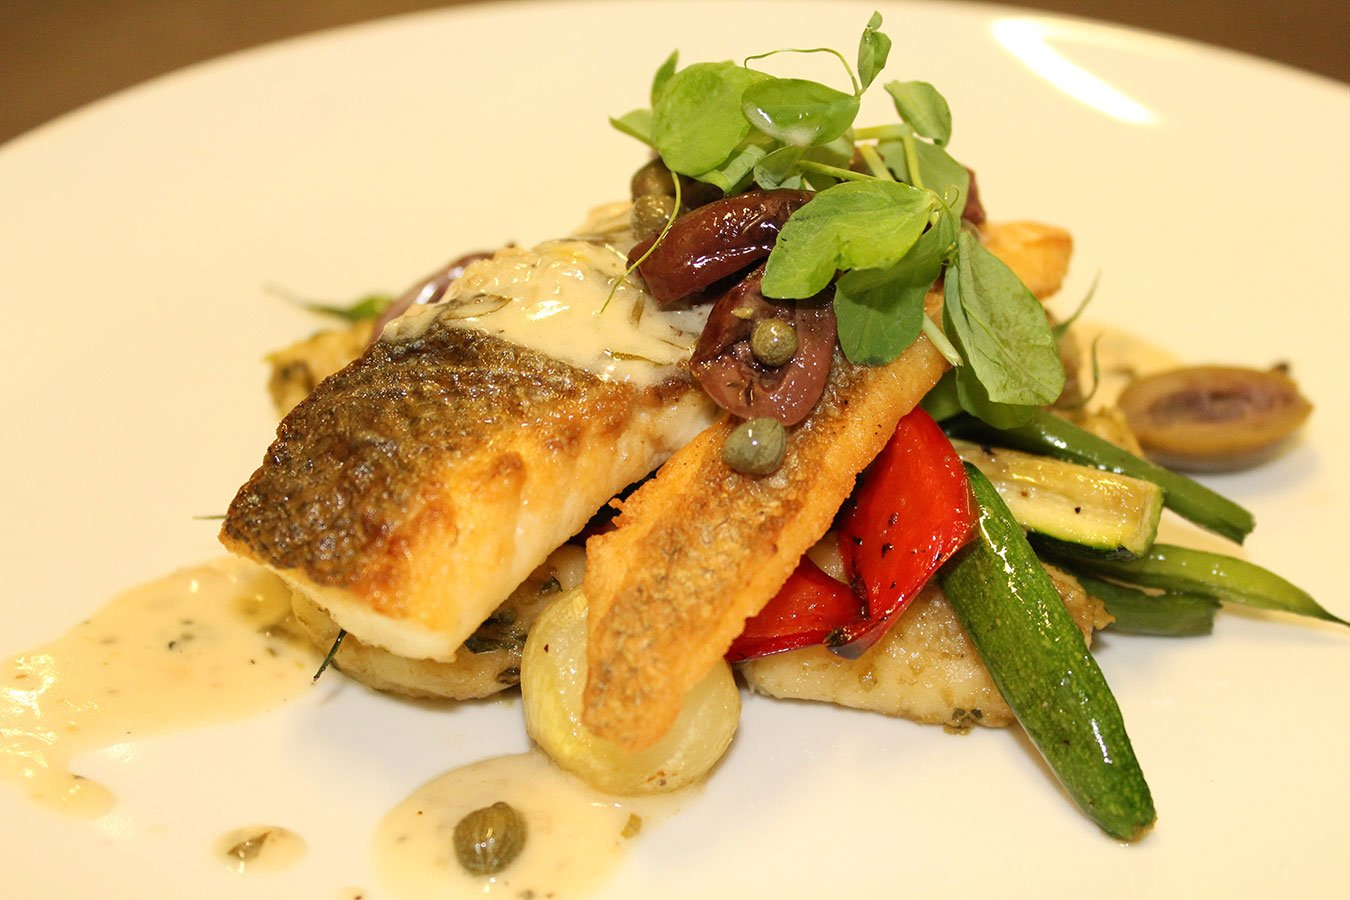 Pan Roasted Branzino with Tomato, Olive, Caper and Tarragon. Served with Pesto Gnocchi and Roasted Baby Vegetables